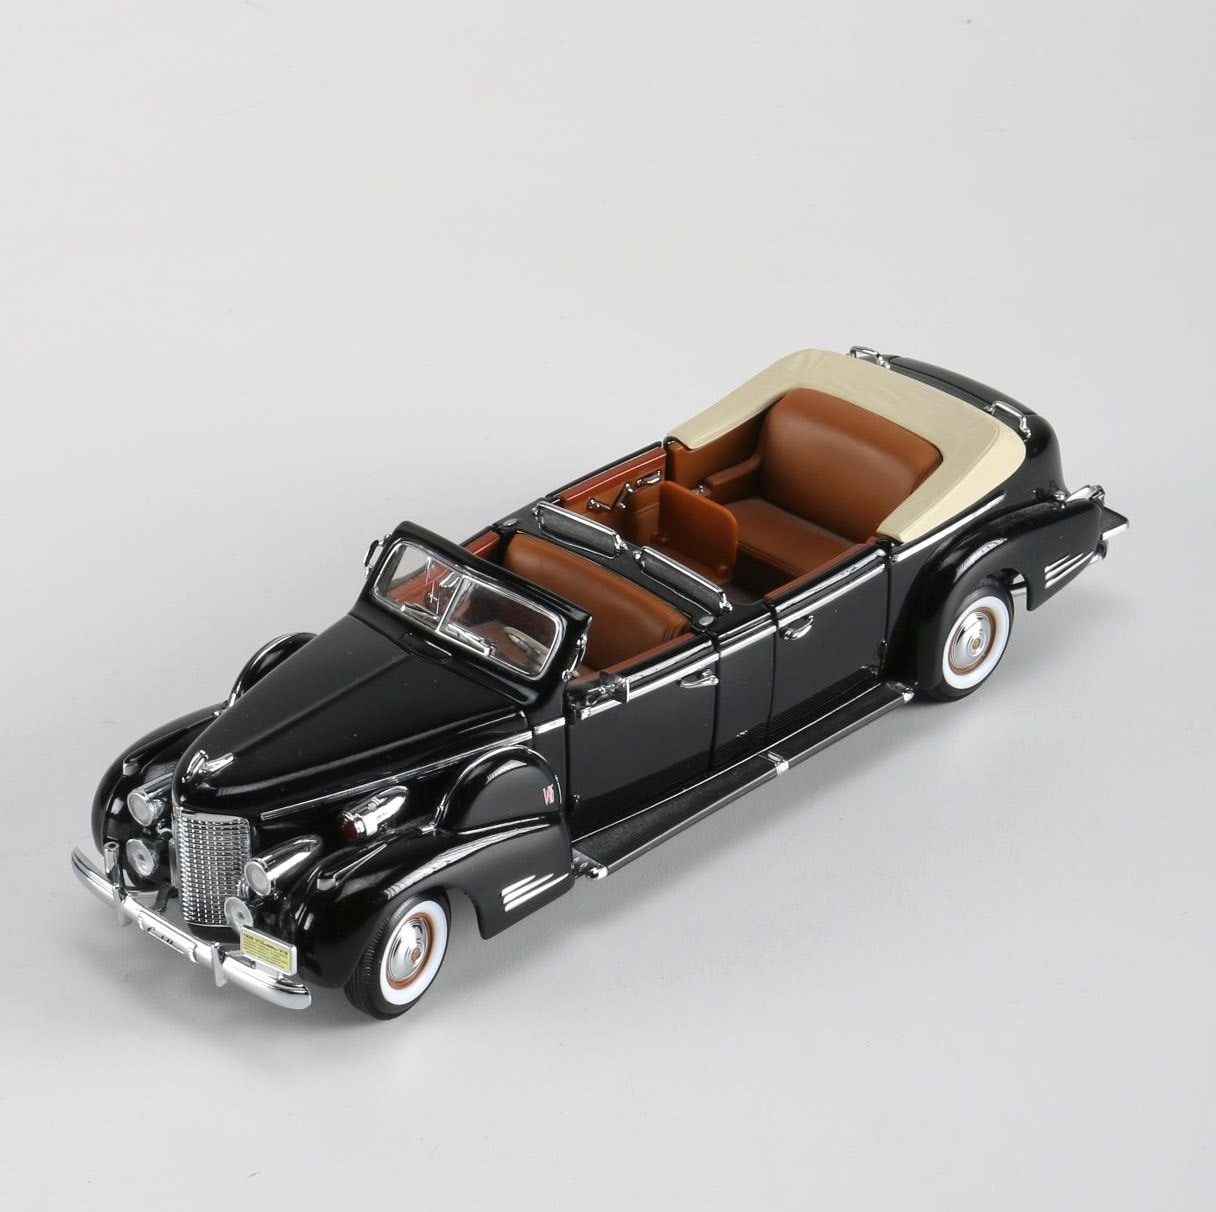 1:24 Scale Model 1938 Cadillac Presidential Limousine